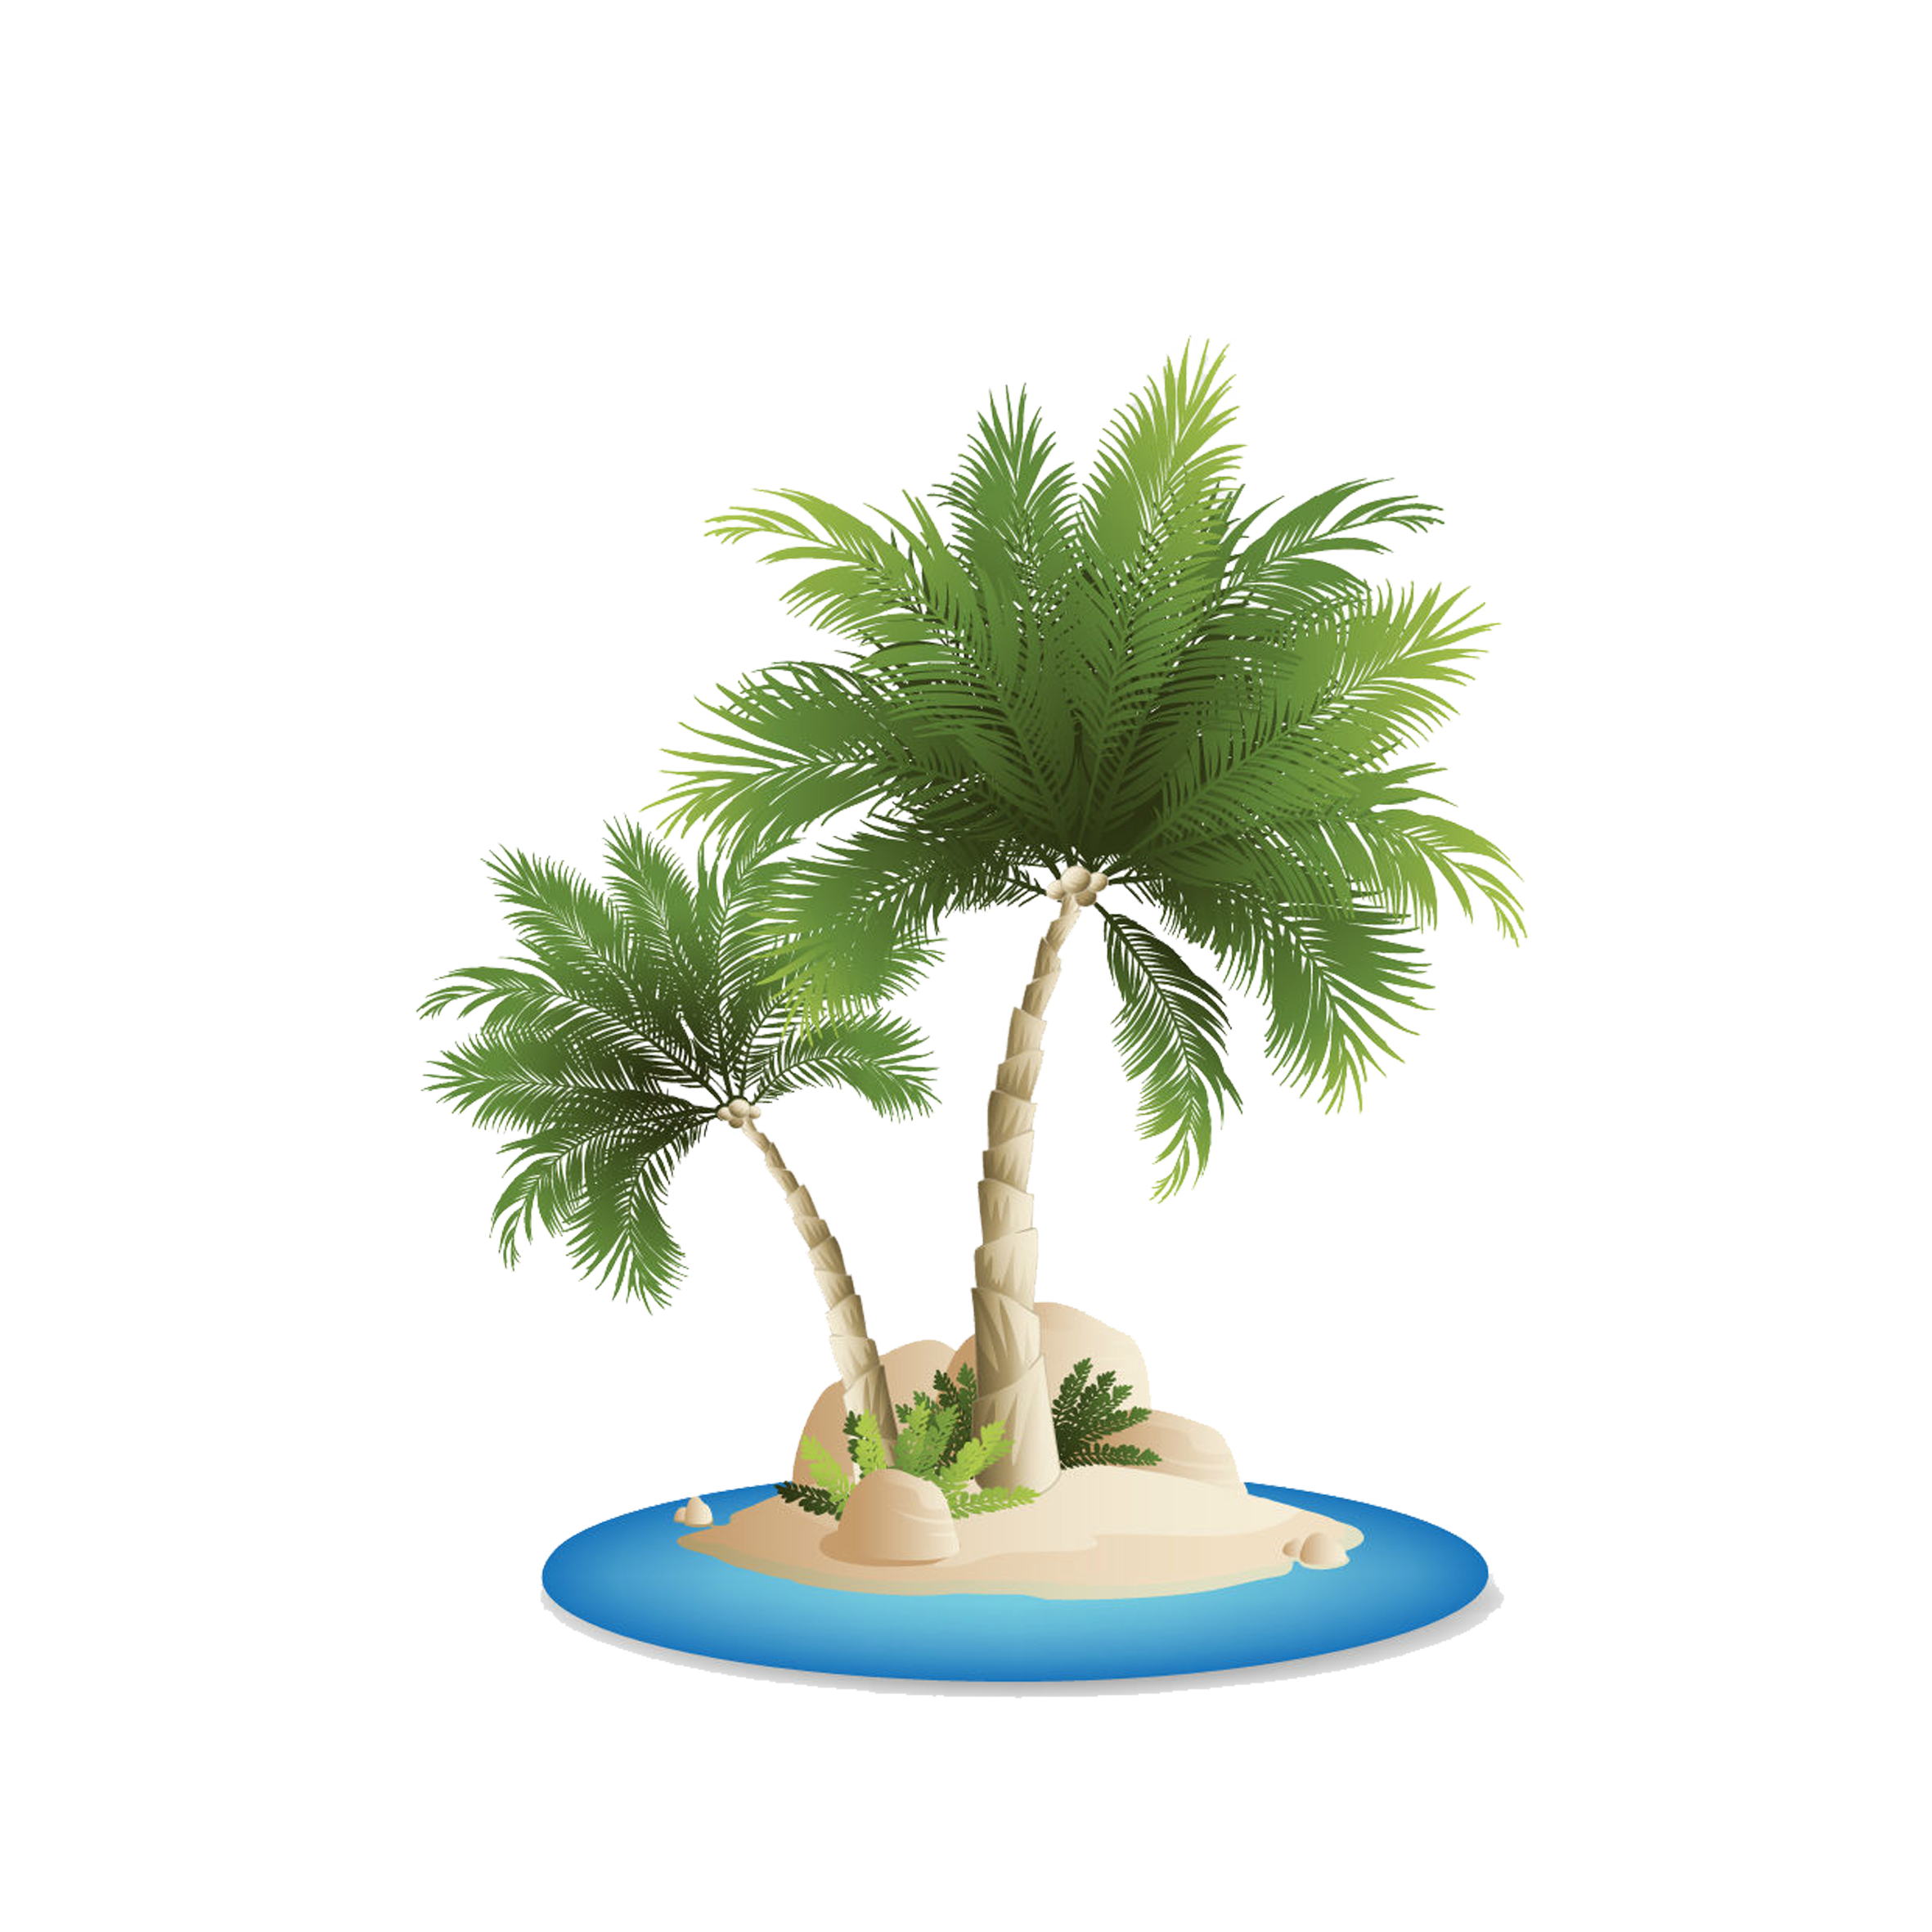 Palm clipart tree egypt. Islands arecaceae clip art